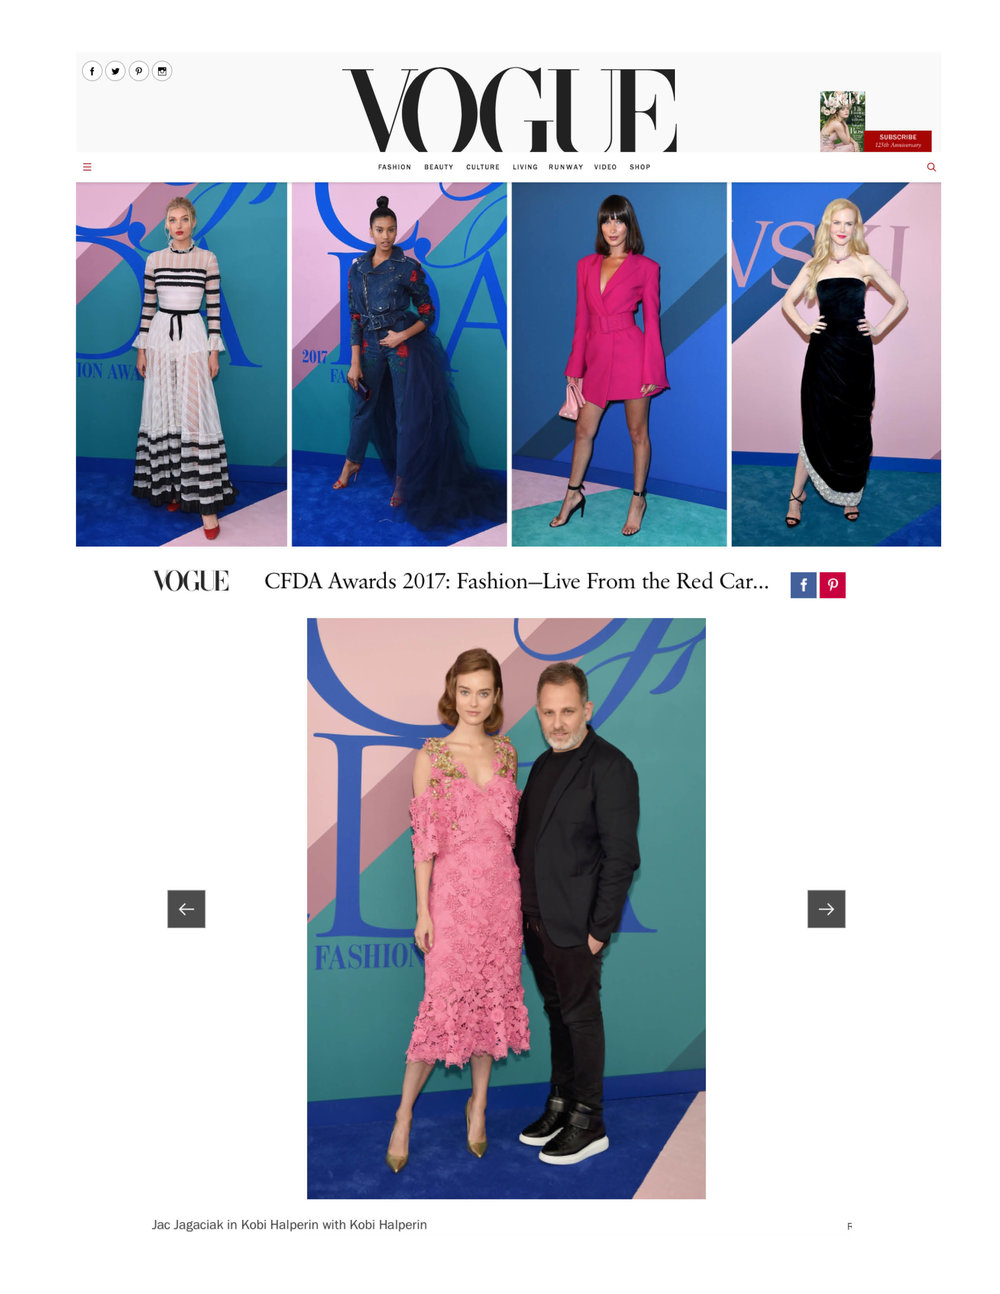 CFDA Awards 2017 Press Coverage.jpg